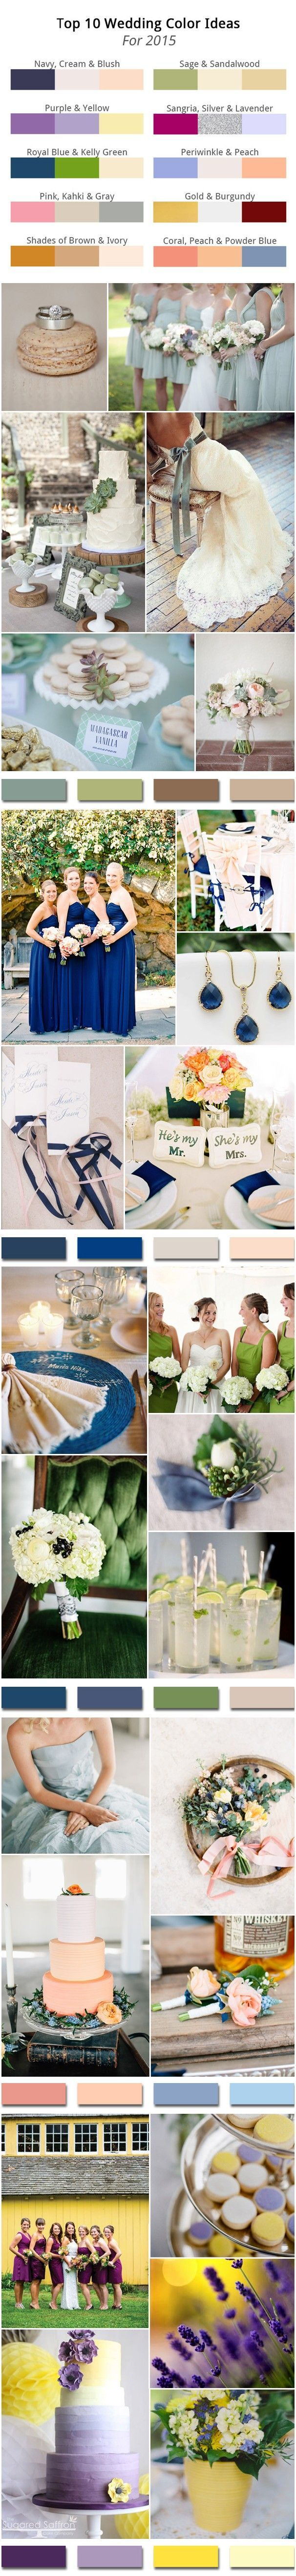 Top 10 Wedding Color Ideas for 2015 Trends #weddingcolors